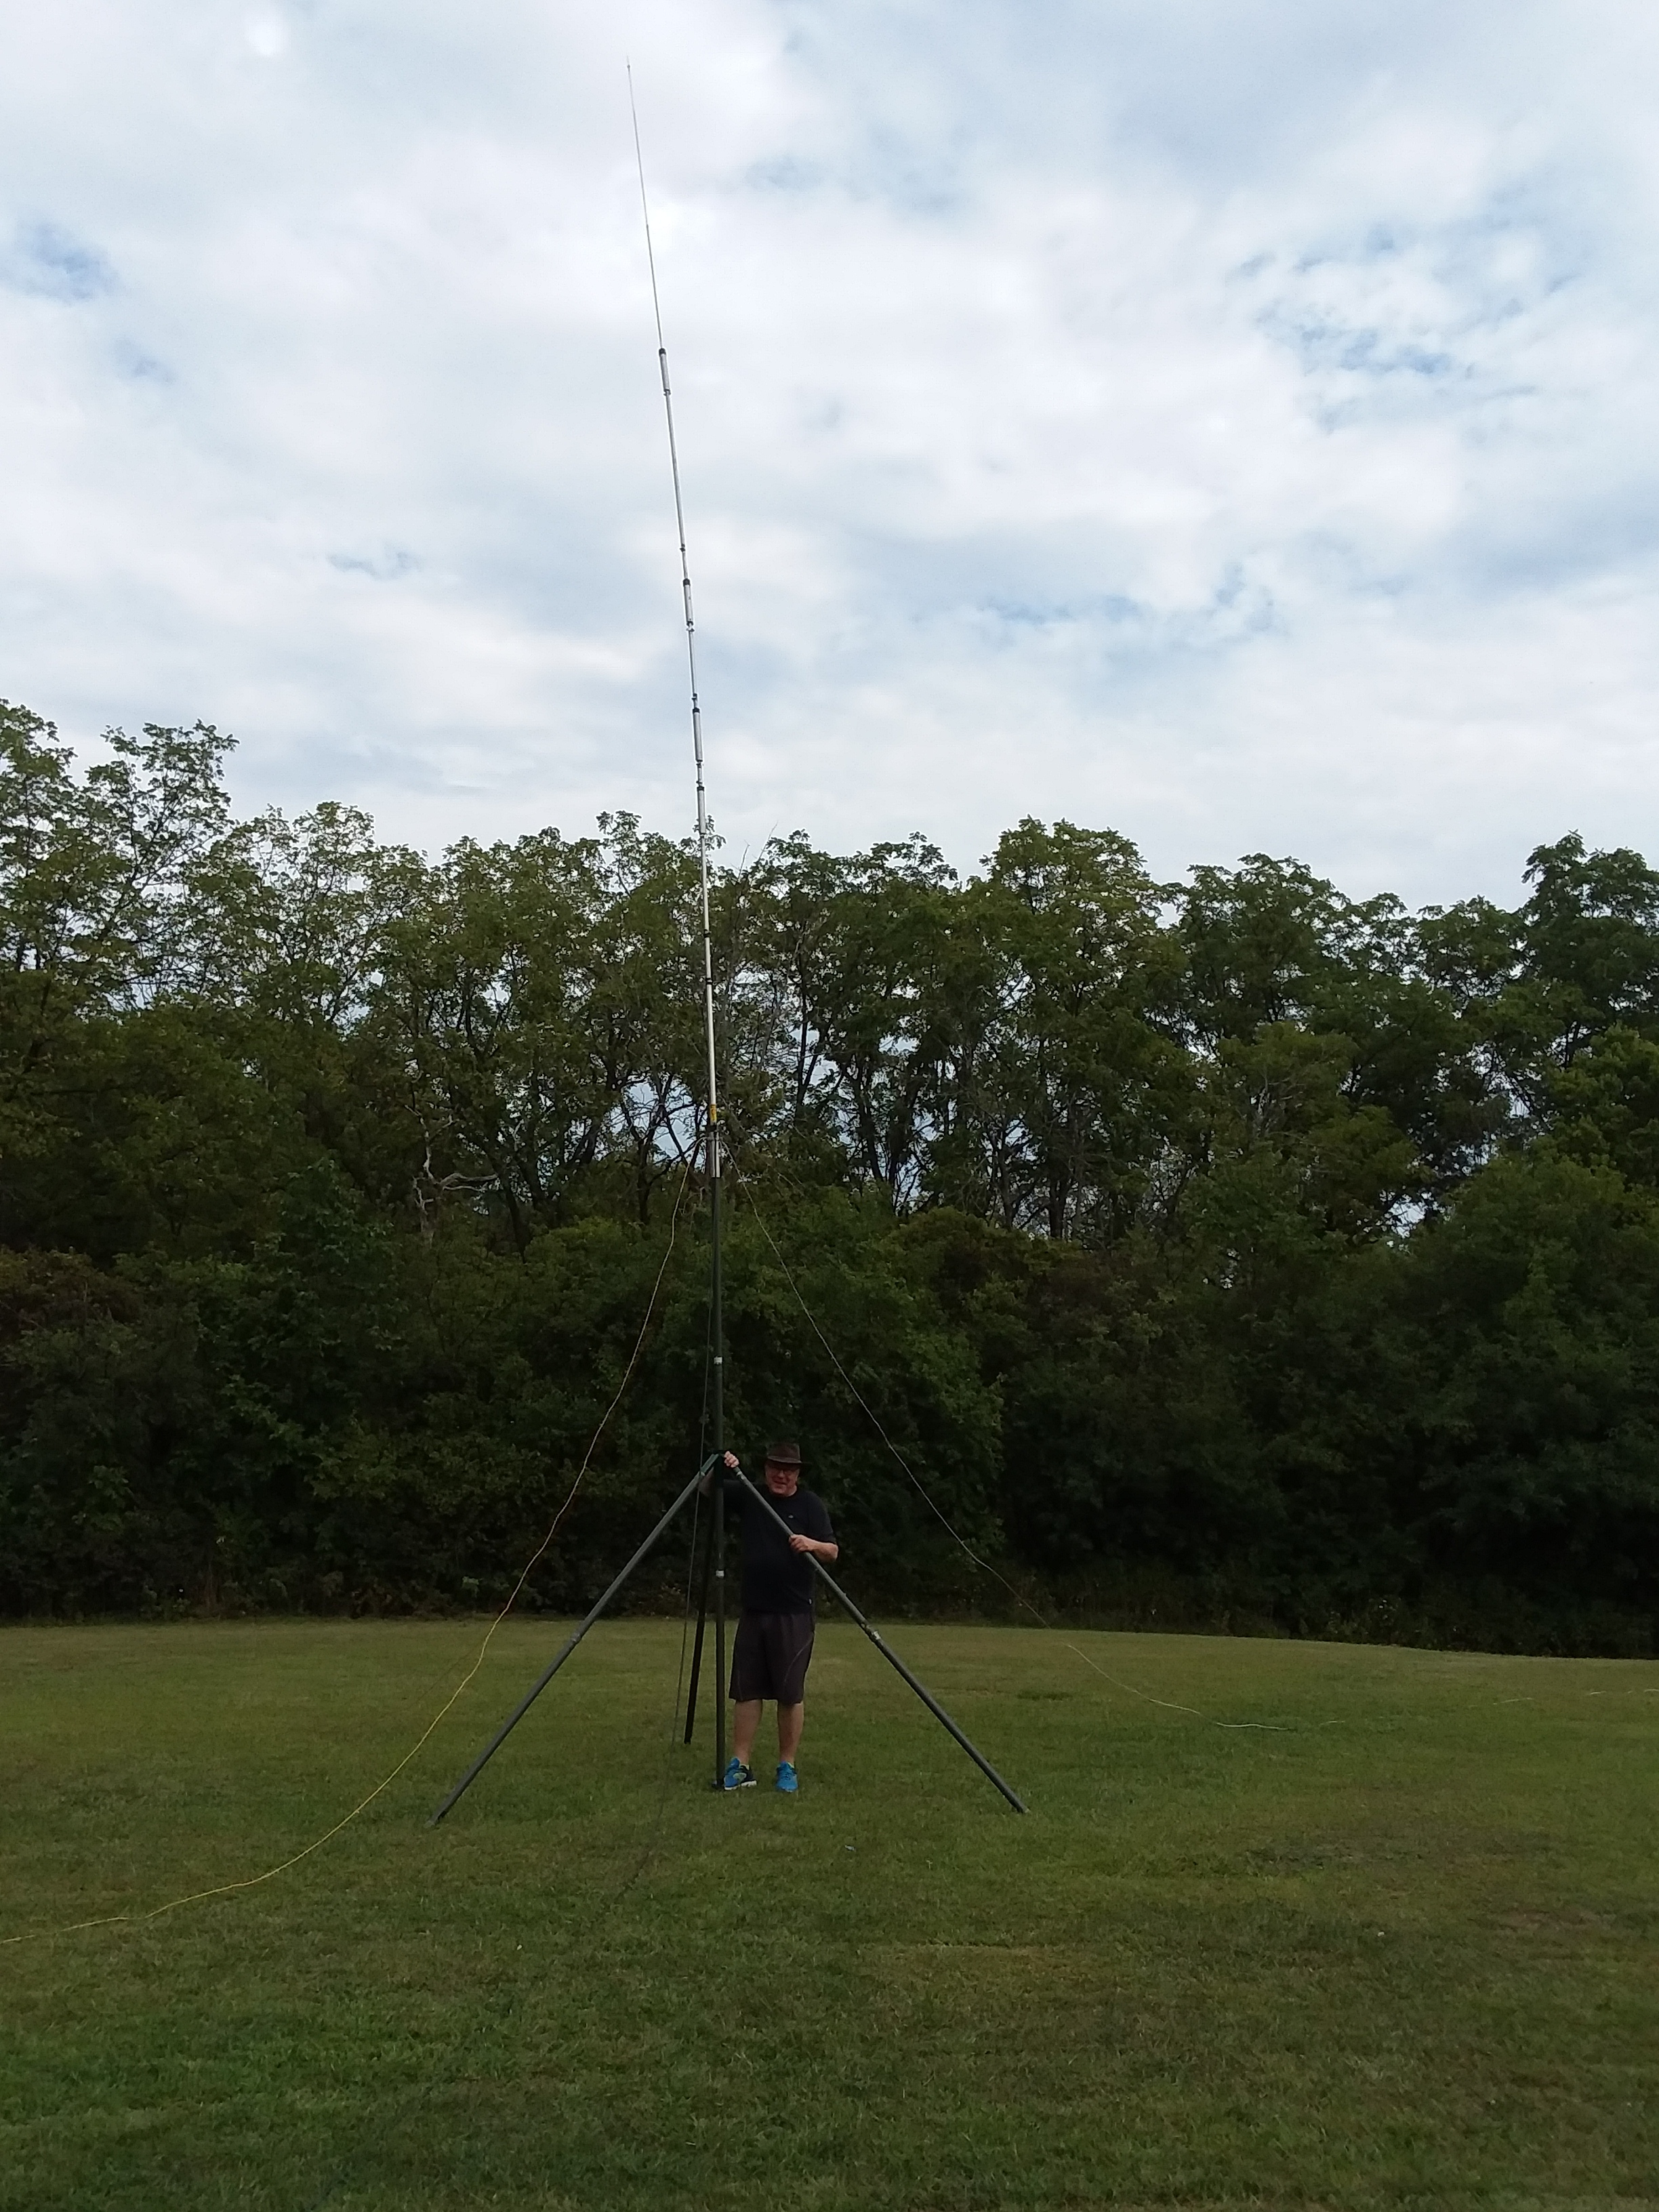 George (N9VTB) was out in the woods early to save our spot at Bemis Woods. He set up a great antenna.